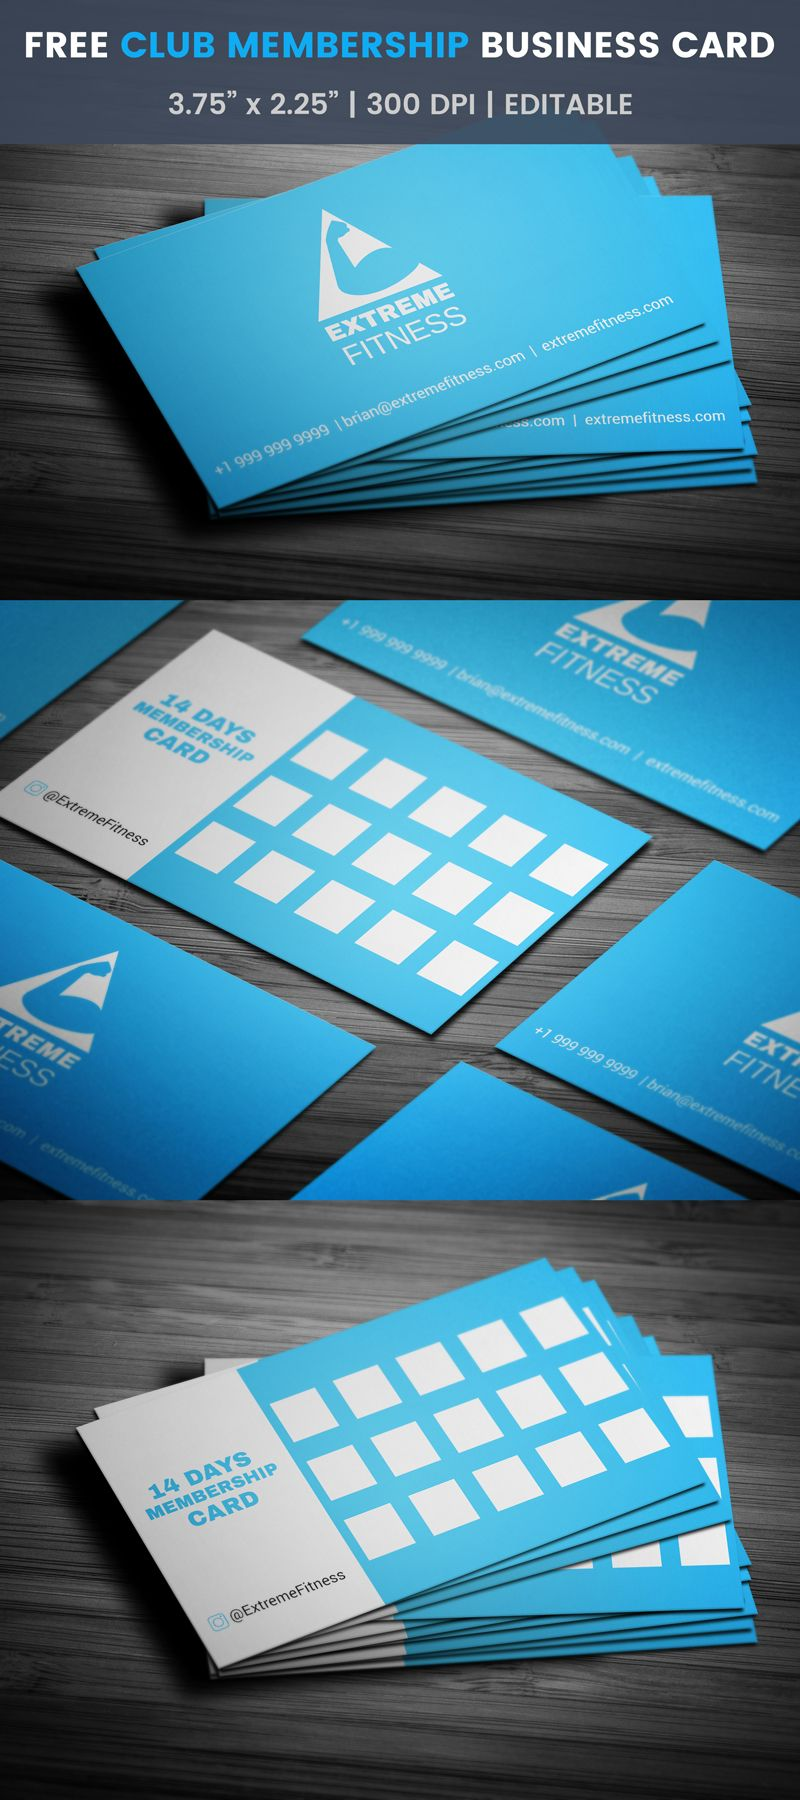 Membership Cards Templates Fitness Club 14Day Membership Business Card #workout #club  Визики .